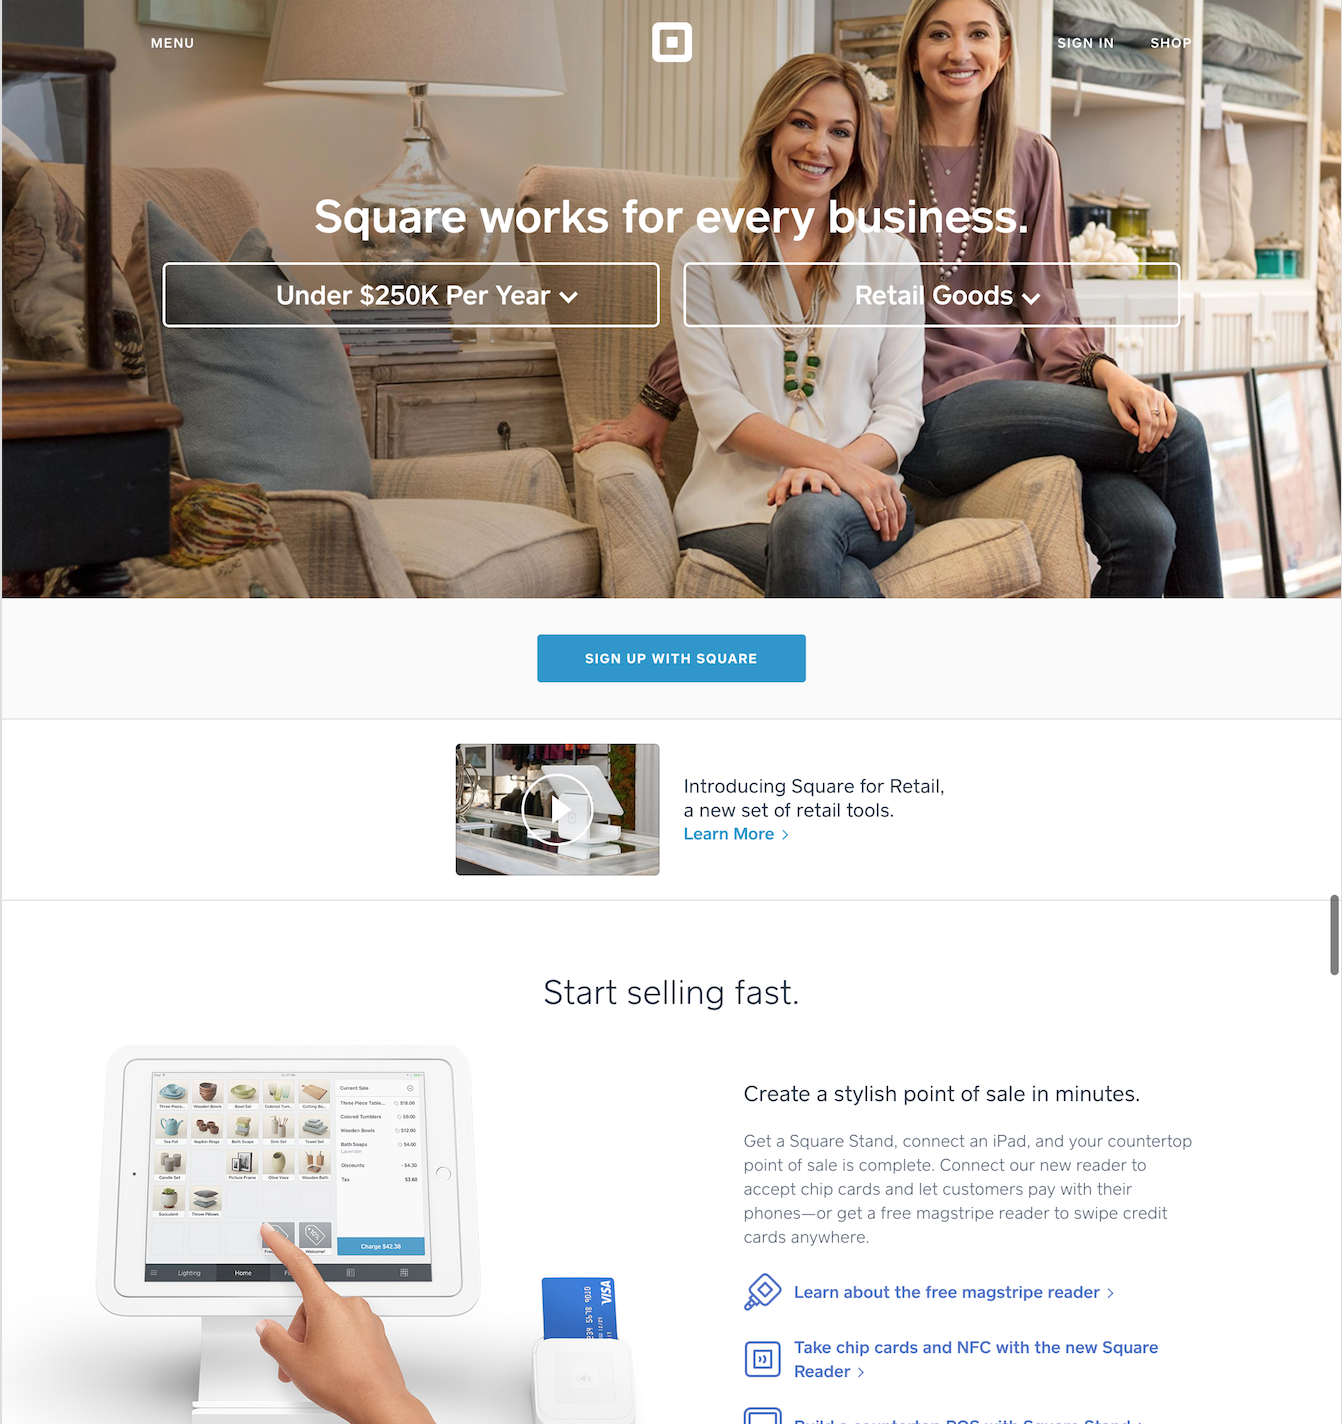 landing-page-example-square